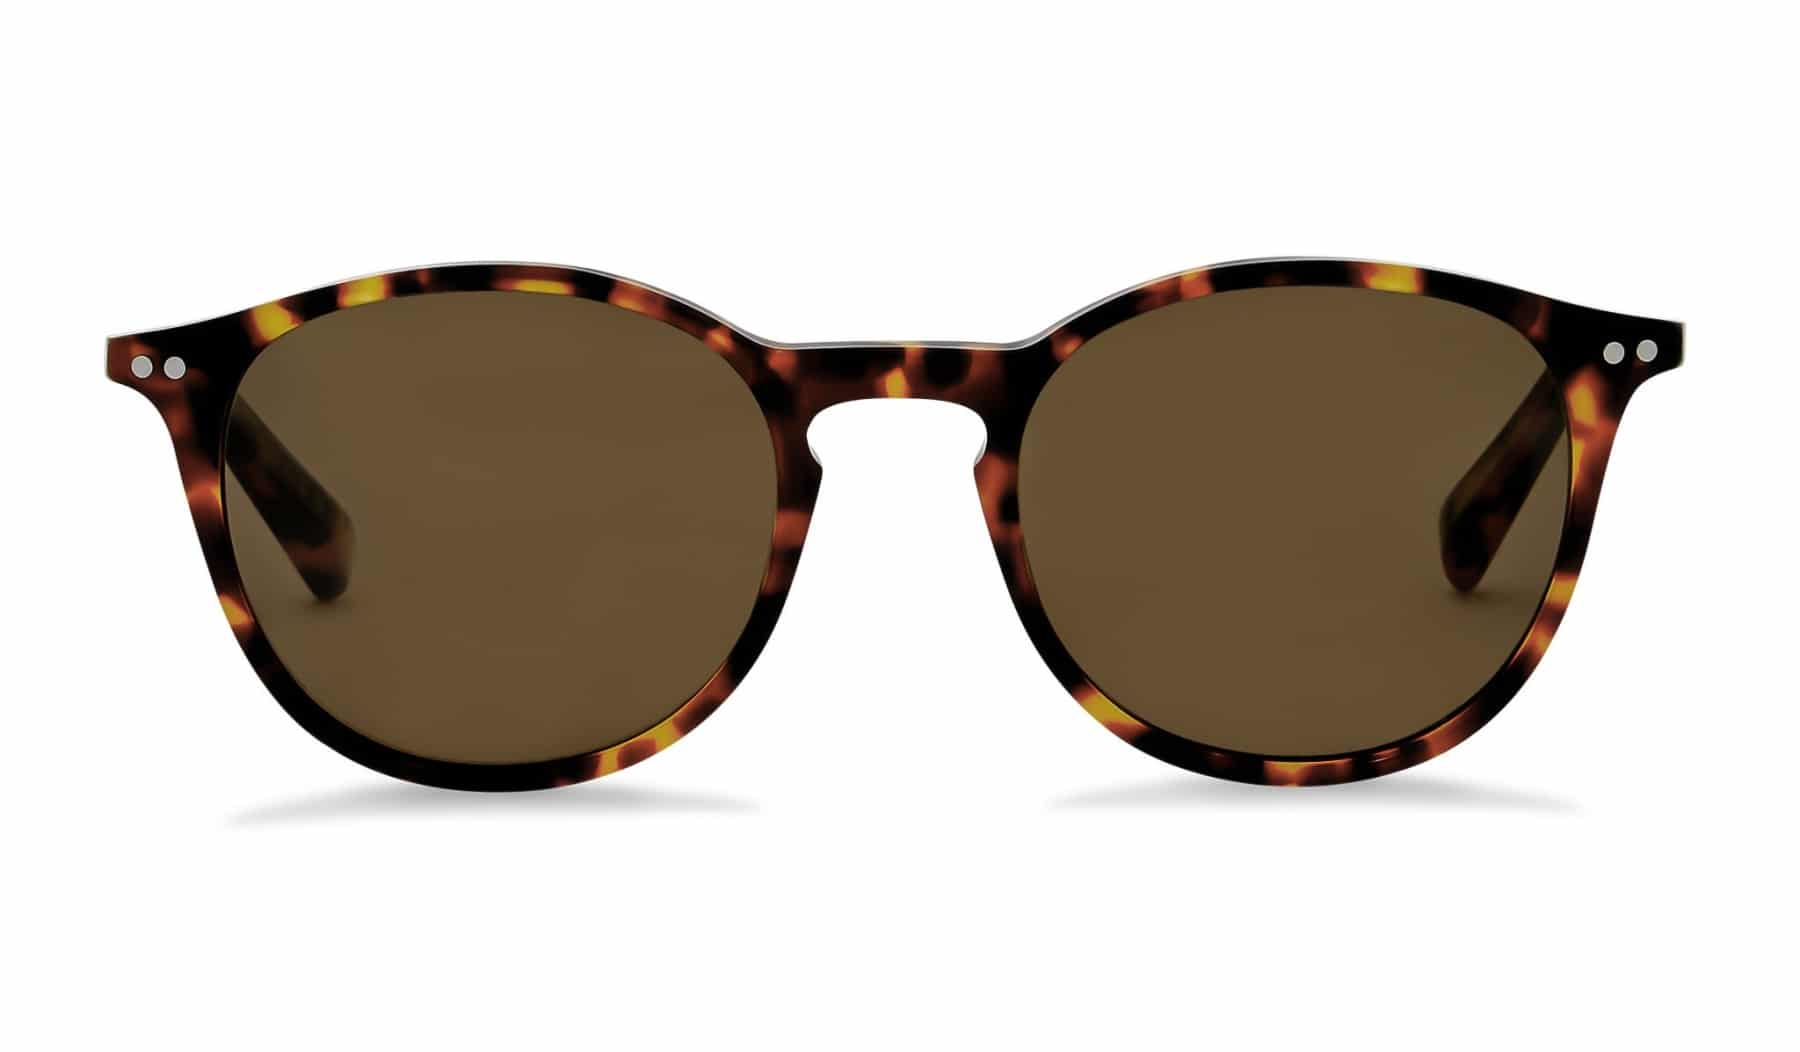 Sunglasses Over Glasses Australia  are bailey nelson sunglasses the best in australia man of many